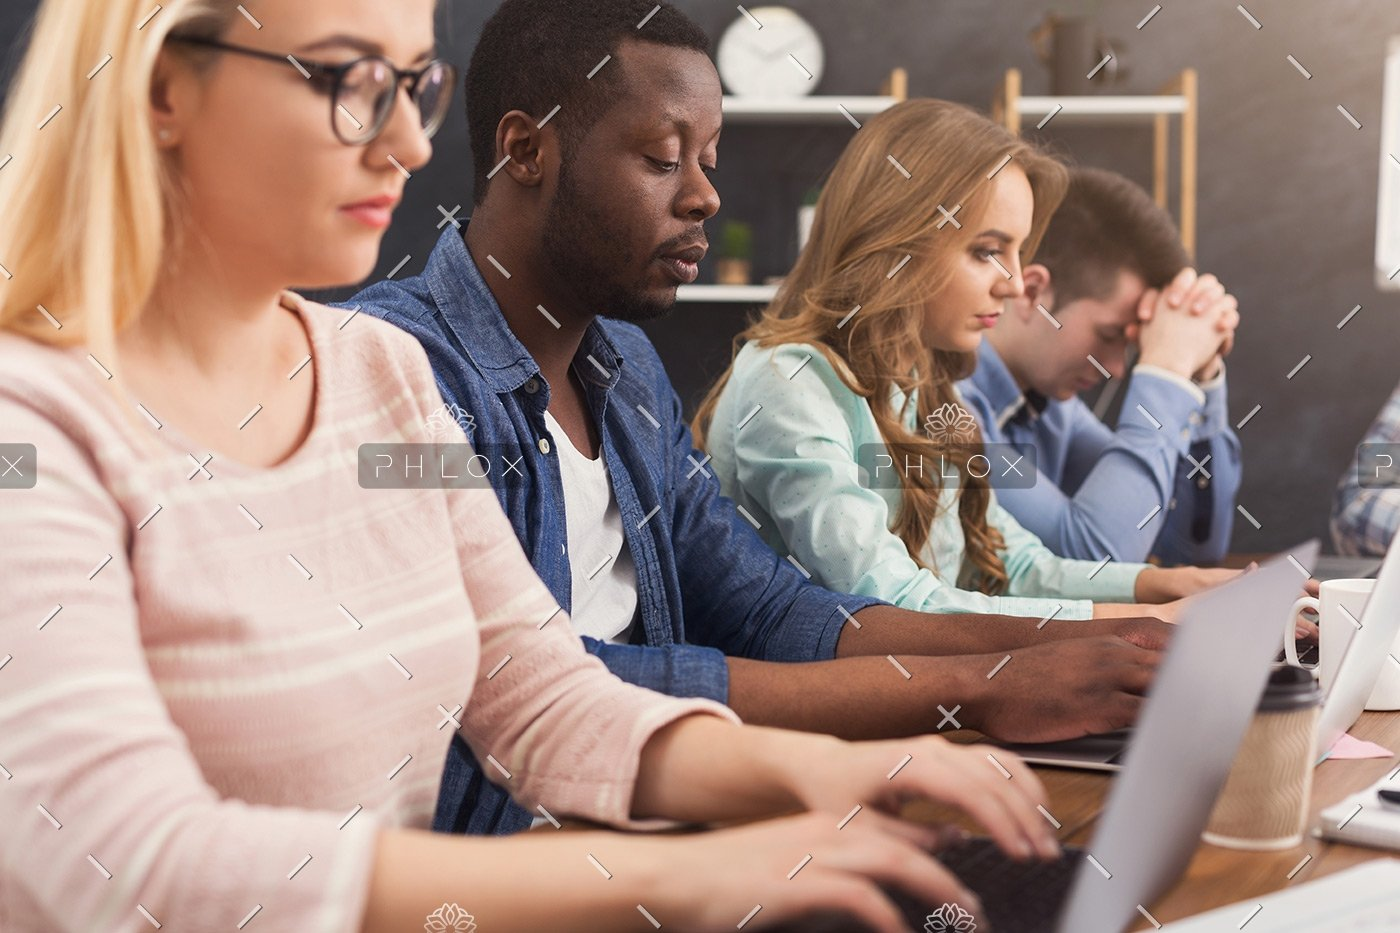 programmers-working-in-software-developing-PGV86YJ